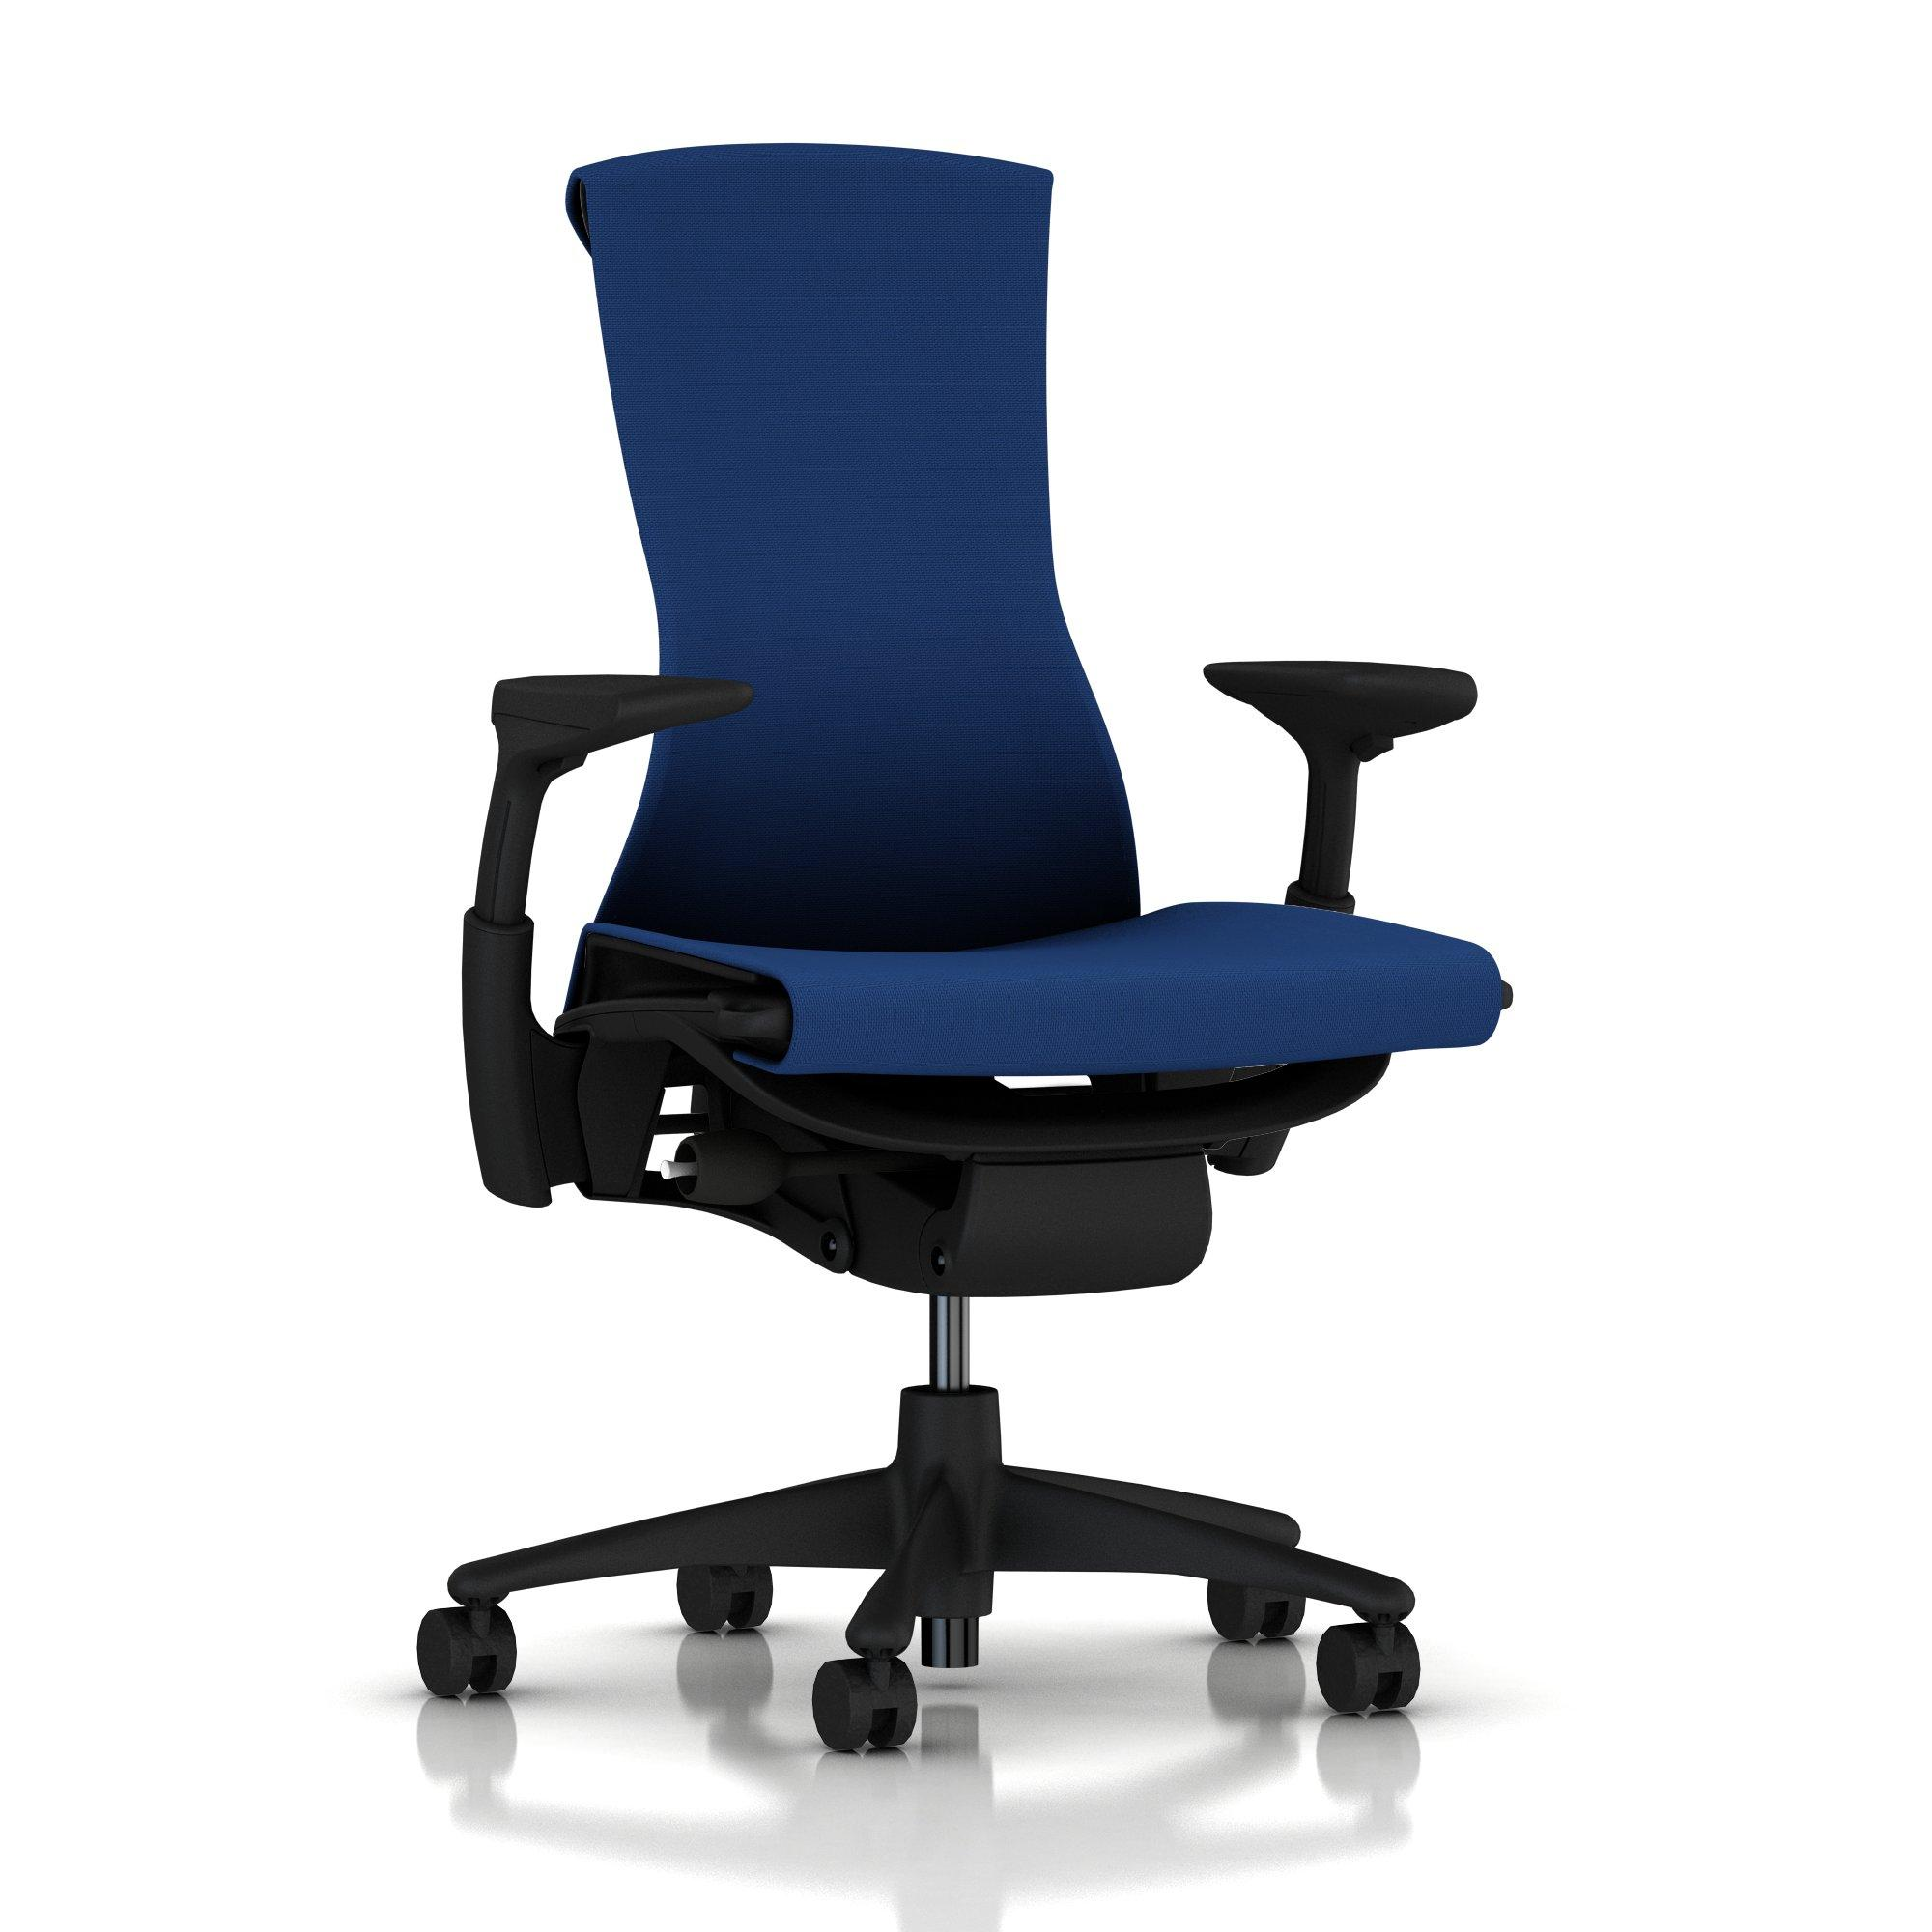 NEW - Embody Chair (Berry Blue Rhythm)